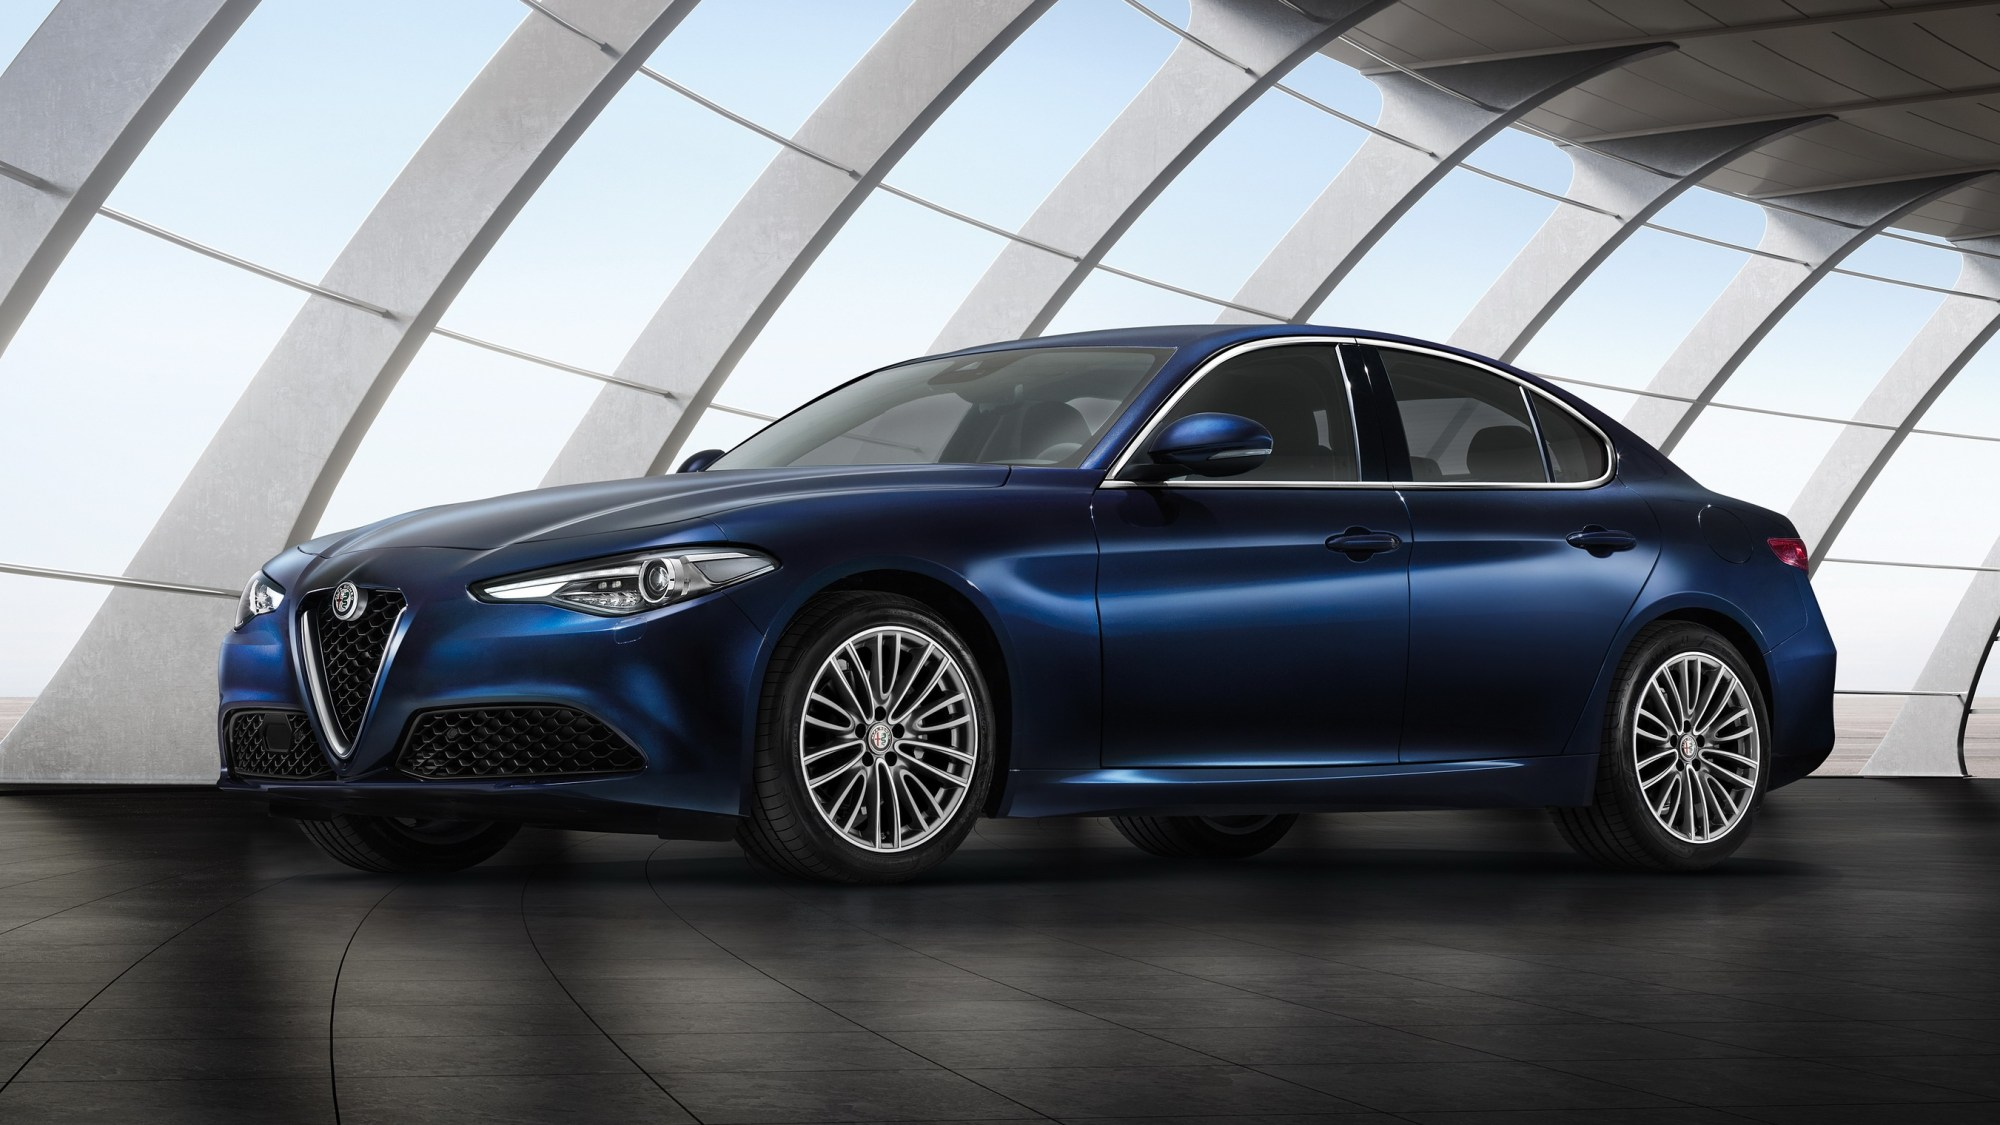 hight resolution of alfa romeo giulia latest news reviews specifications prices photos and videos top speed